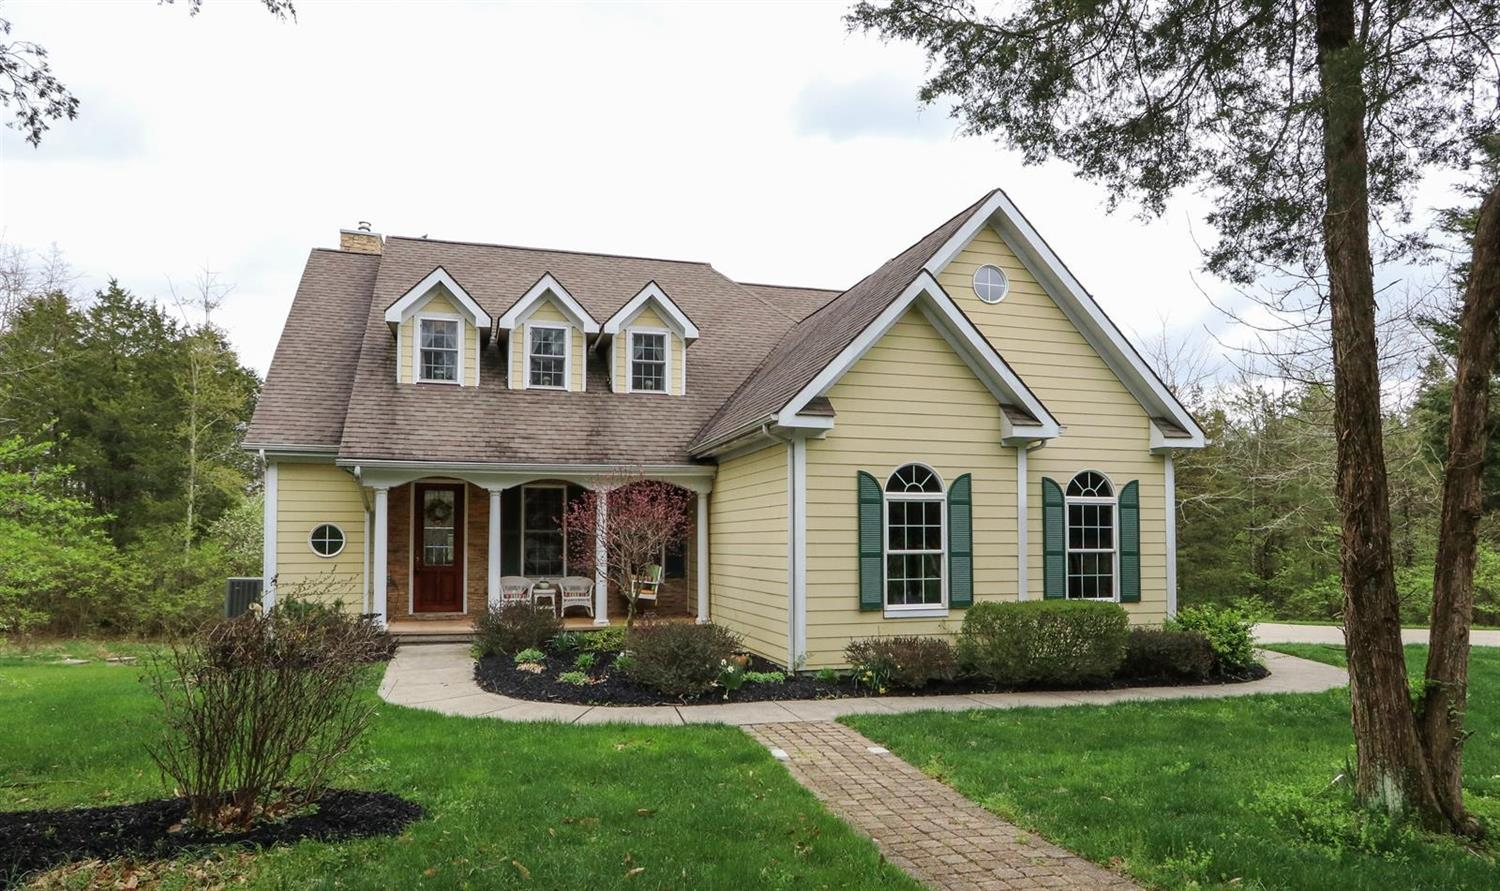 Property for sale at 780 Carol Court, Turtle Creek Twp,  Ohio 45036